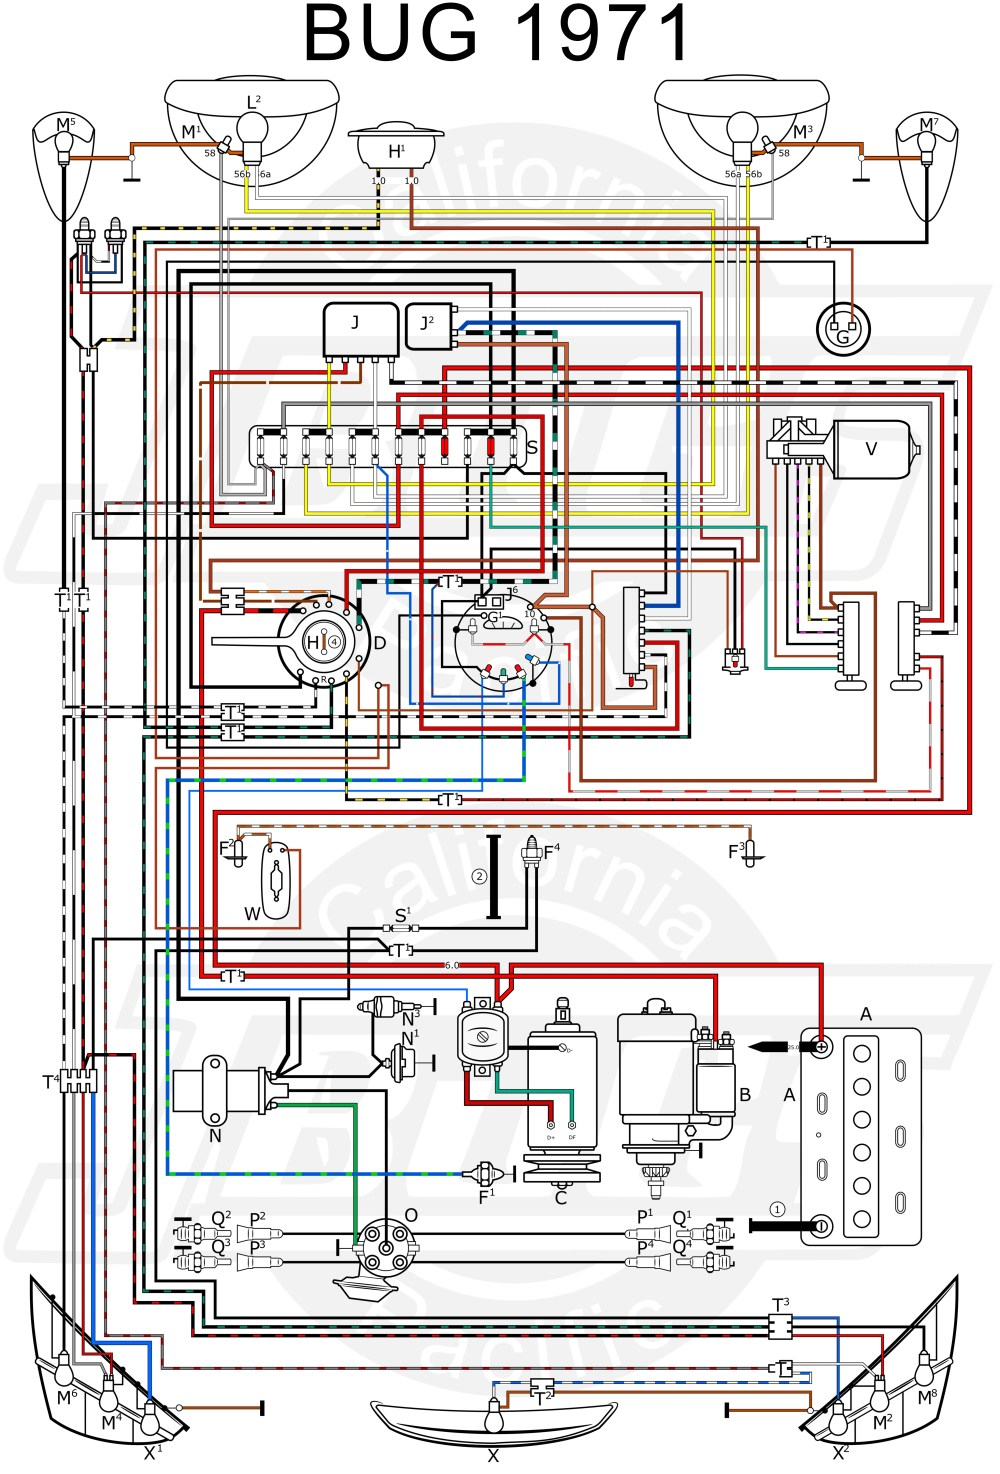 medium resolution of 1979 vw beetle wiring diagram wiring diagram ver1979 vw super beetle wiring diagram wiring diagram sheet